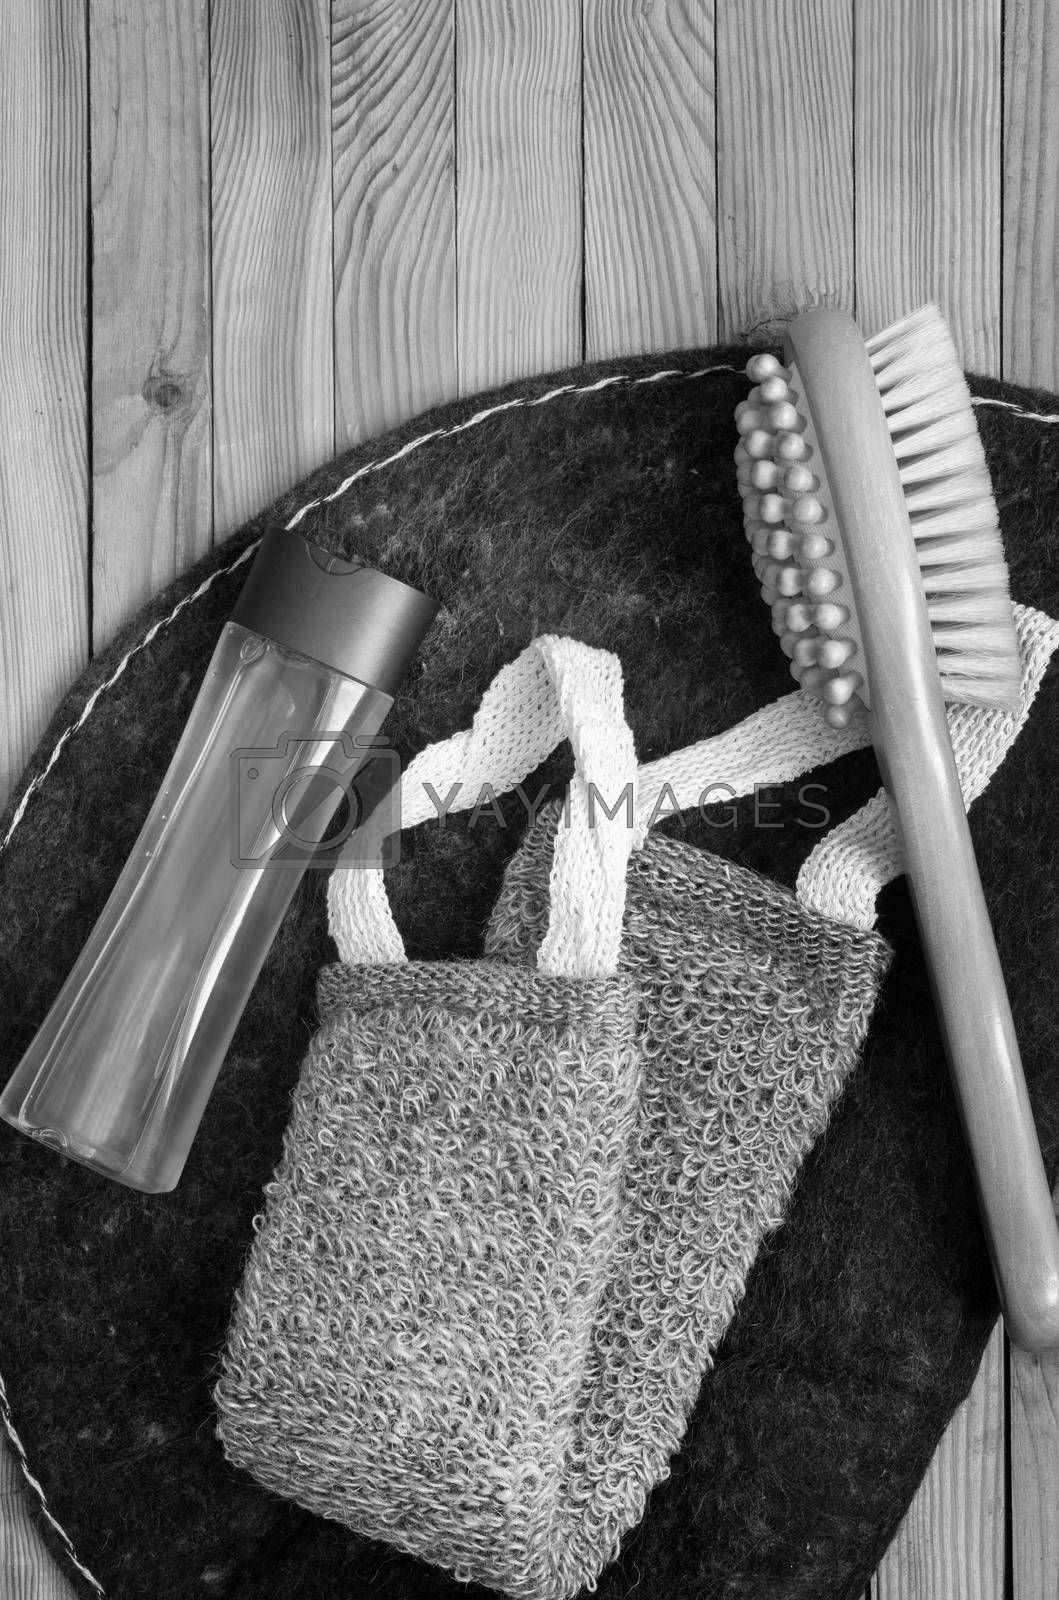 Accessories for visiting a bath or sauna on a wooden background: a washcloth, a mat, a massage brush and shower gel. Top view with copy space. Flat lay